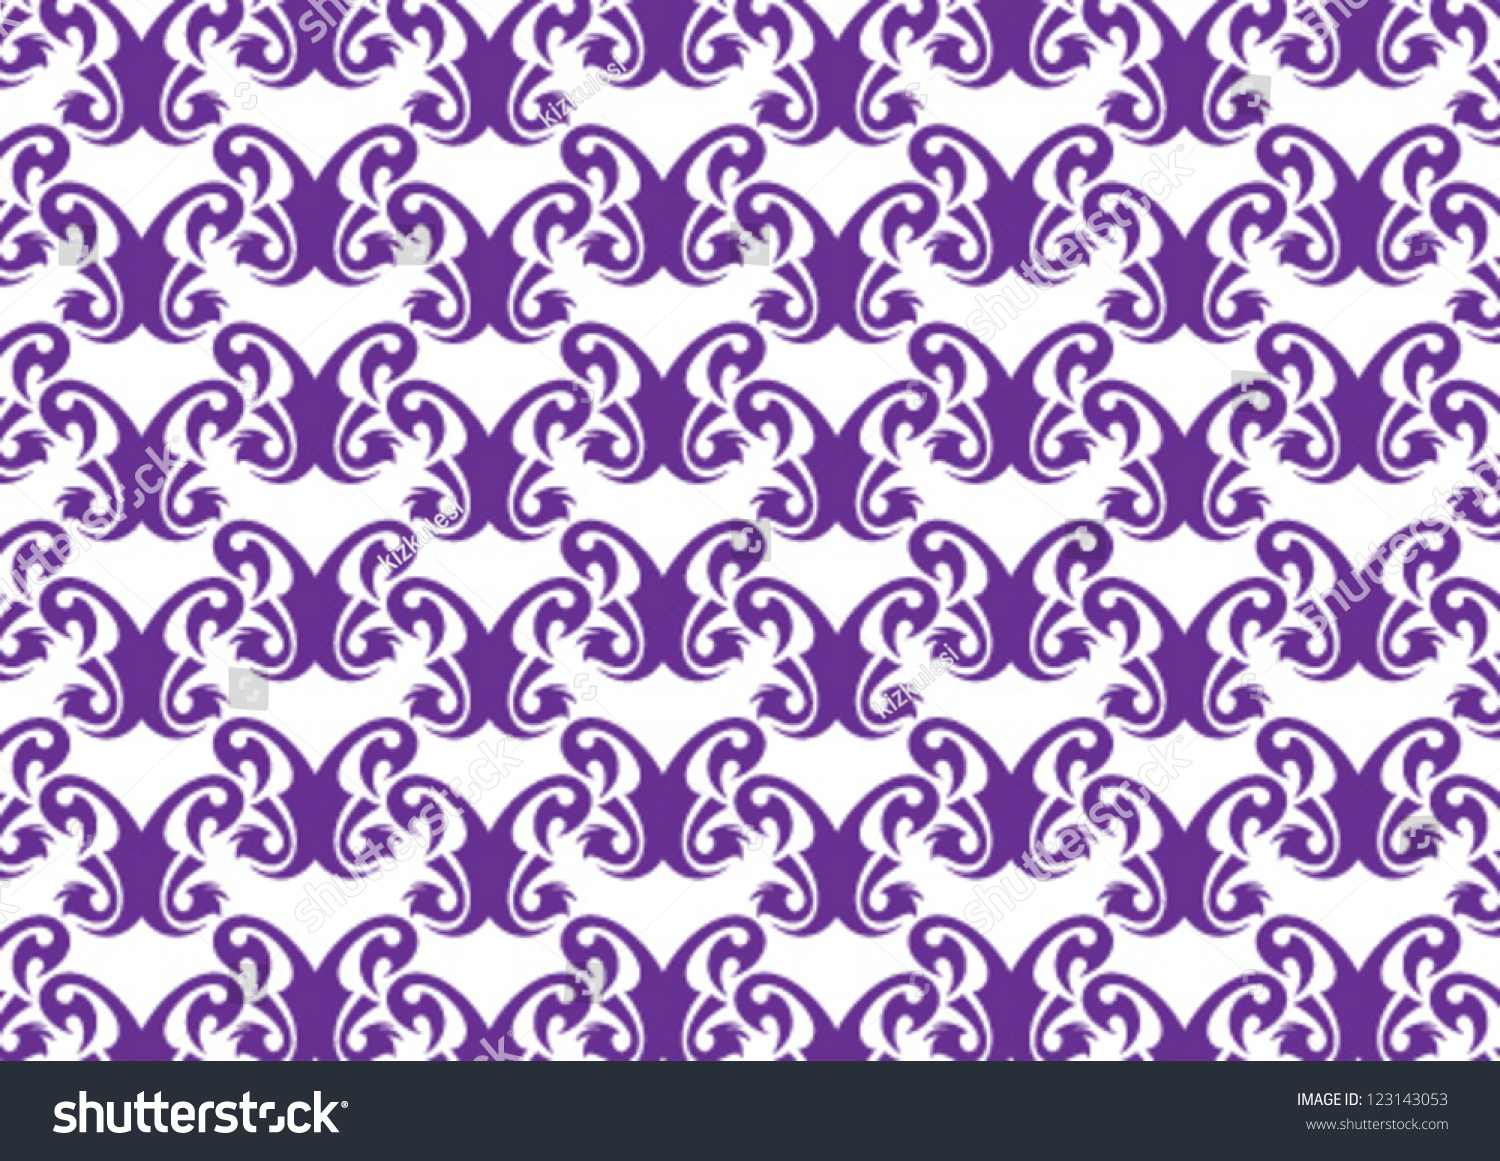 decorative wallpaper pattern for any use - Decorative Wallpaper